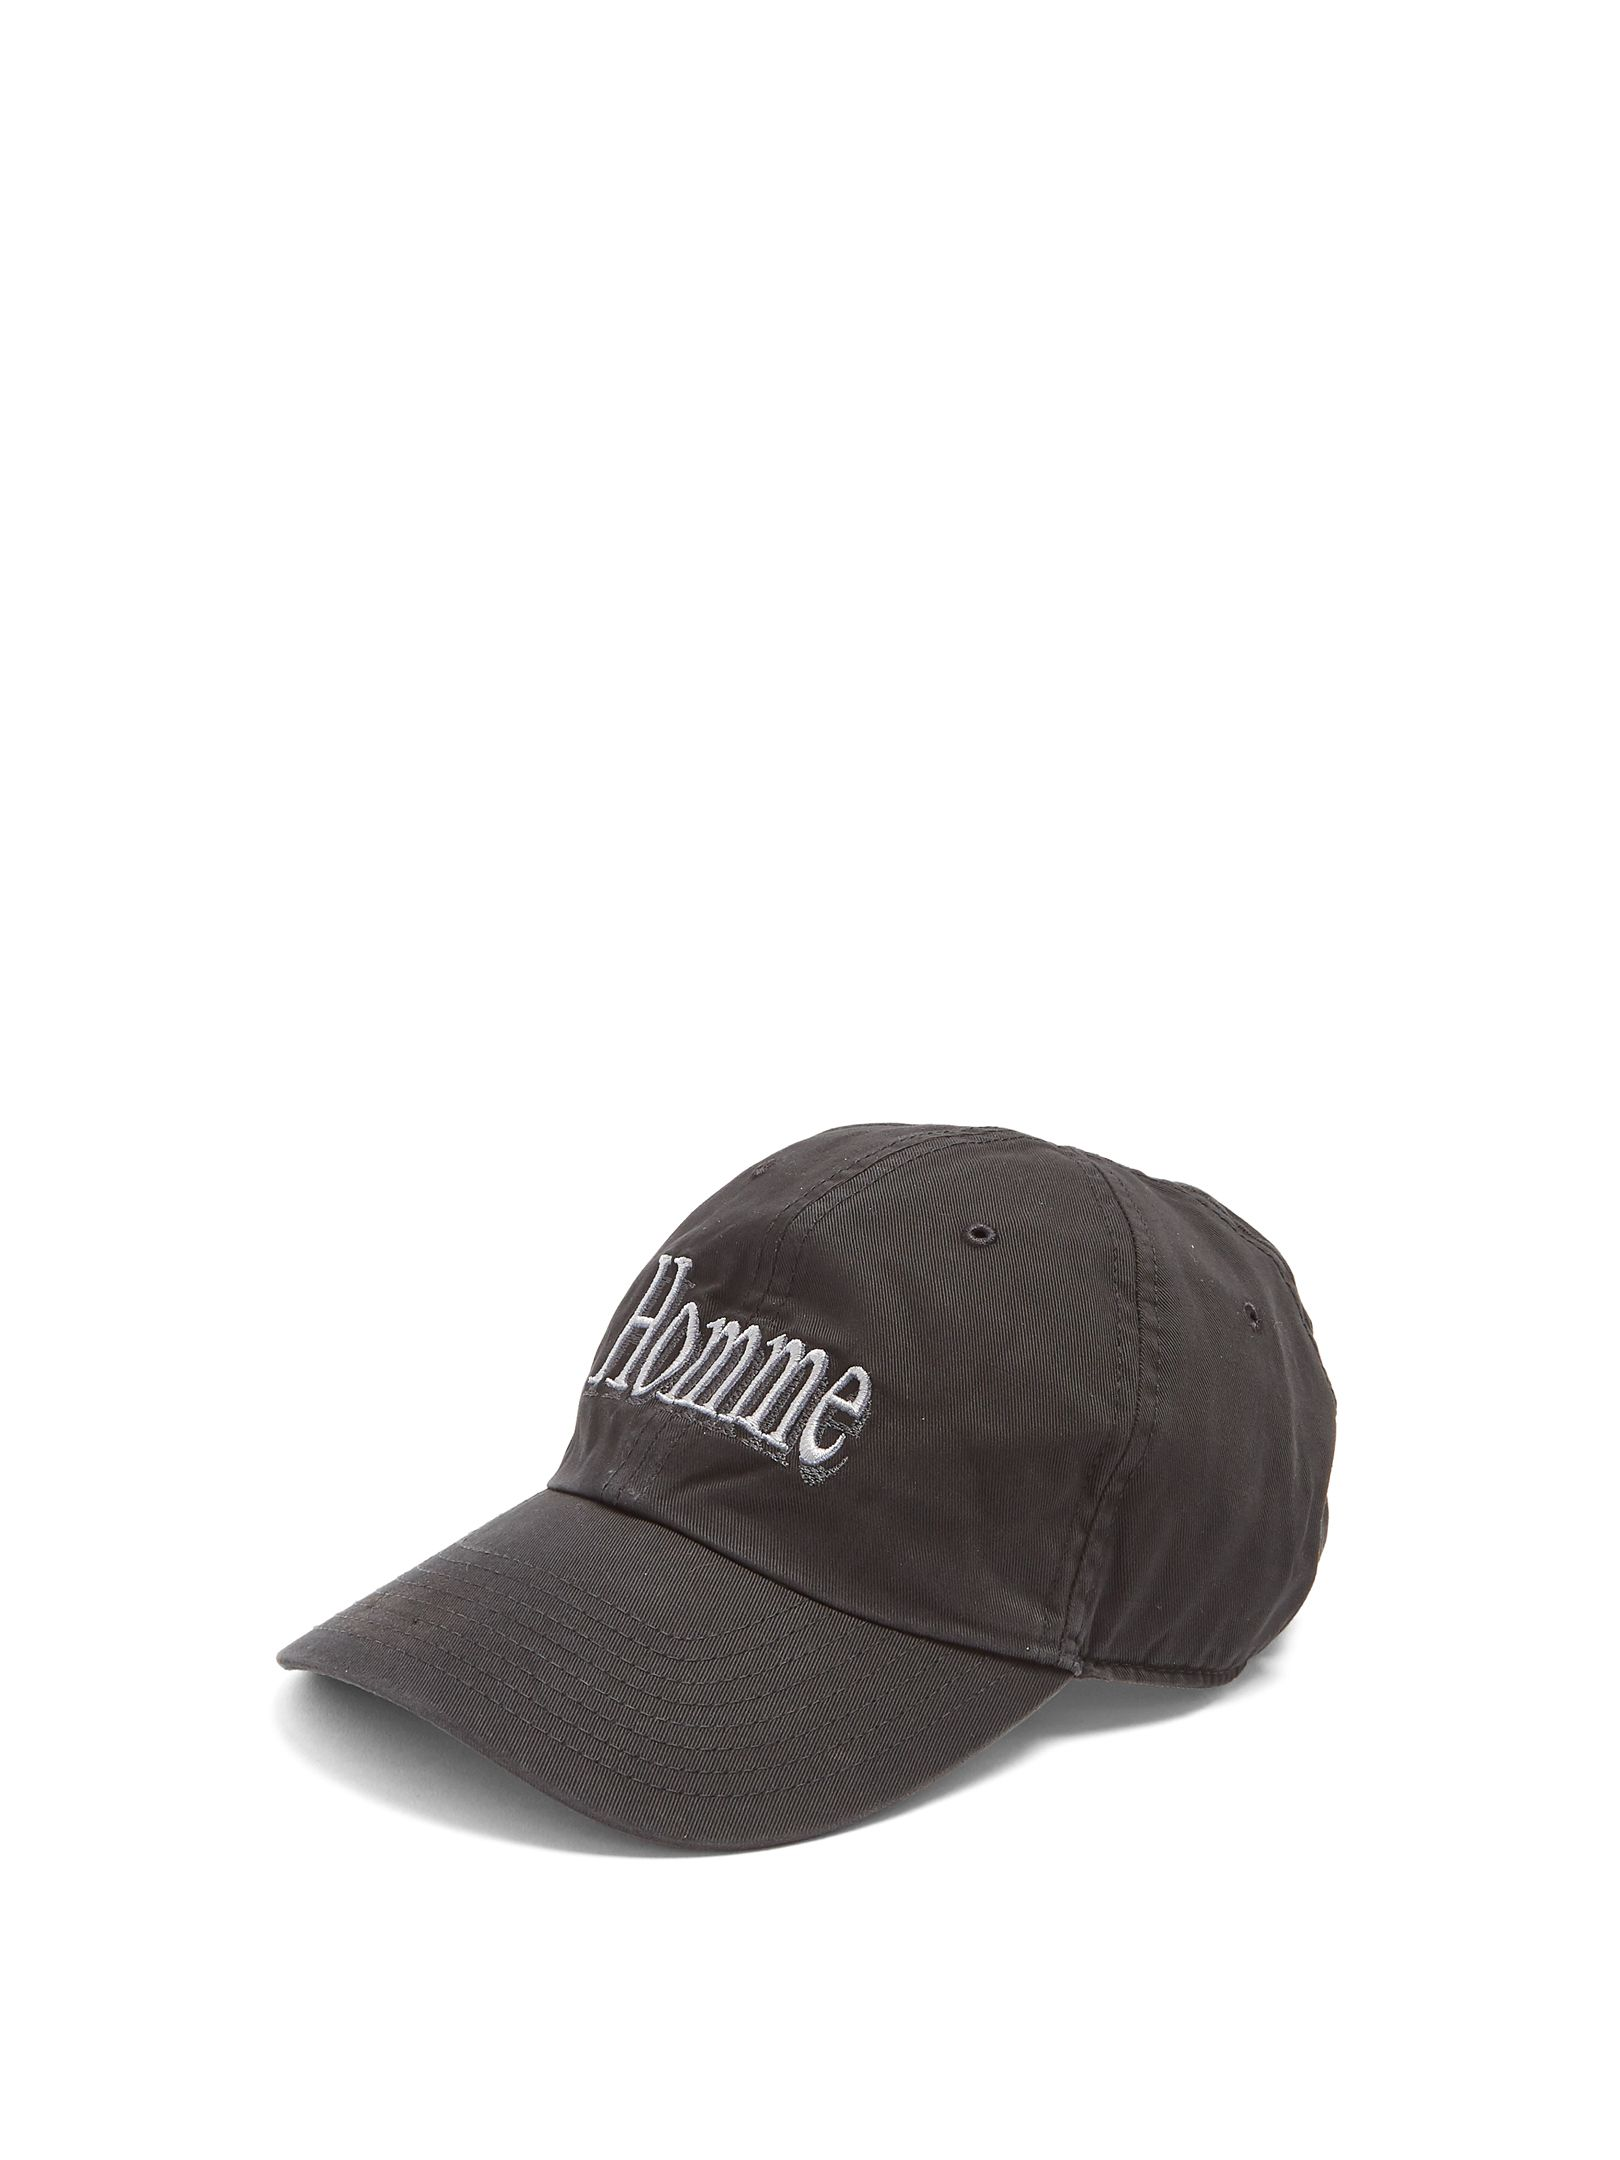 07c8ae0d624 Balenciaga s Homme-embroidered cap is a tongue-in-cheek riff on 90s  normcore styles.